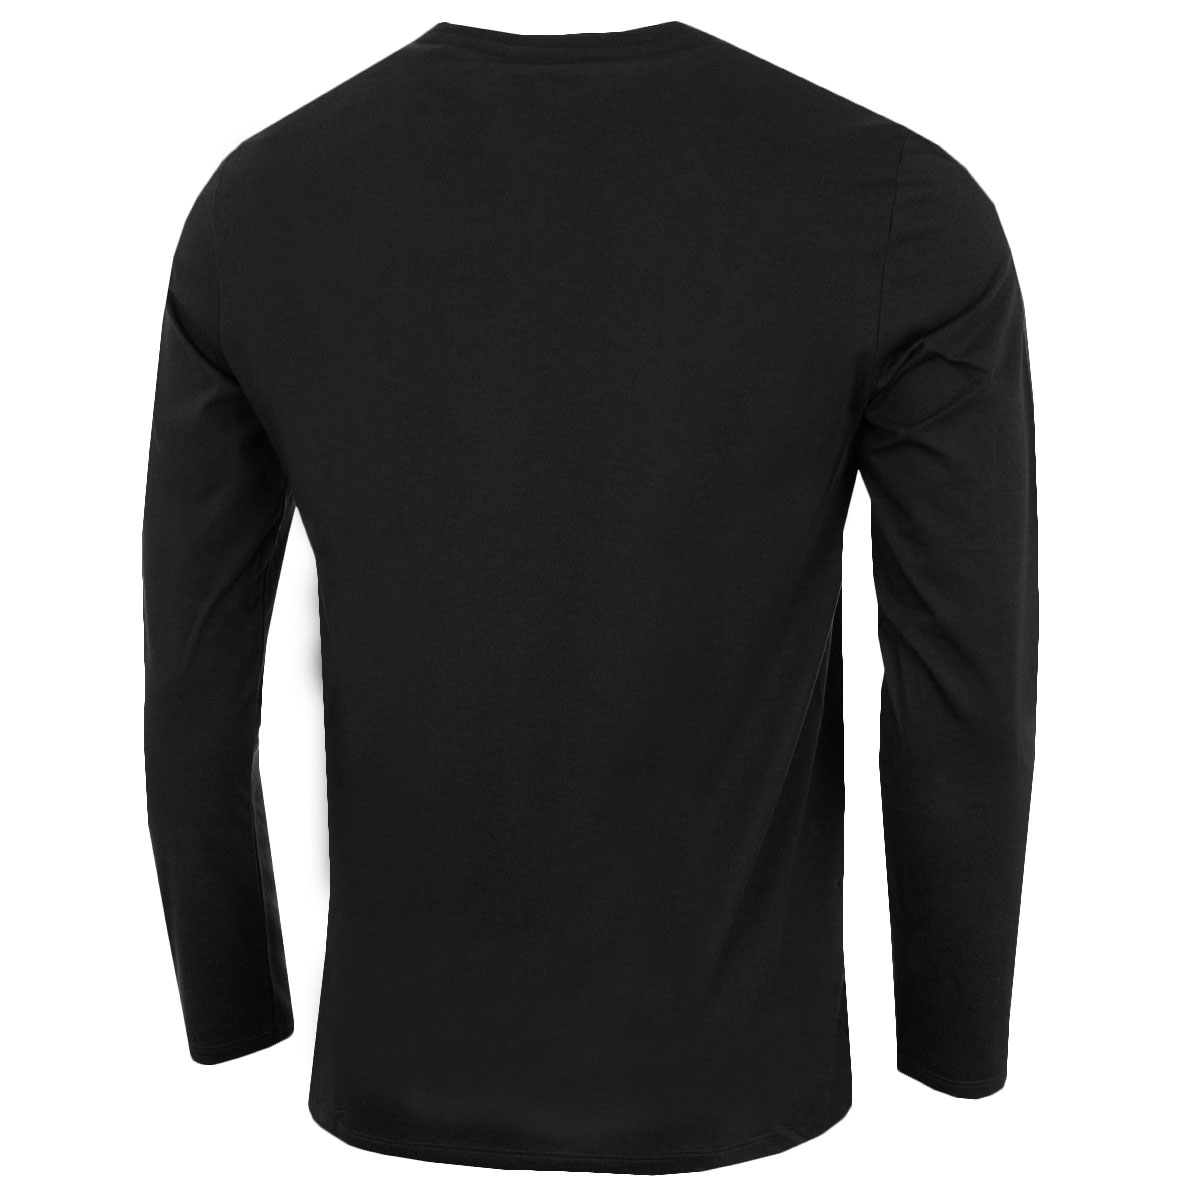 Lacoste-Mens-2019-LS-Crew-Neck-Cotton-T-Shirt-TH6712-Long-Sleeve-Tee-27-OFF-RRP thumbnail 3